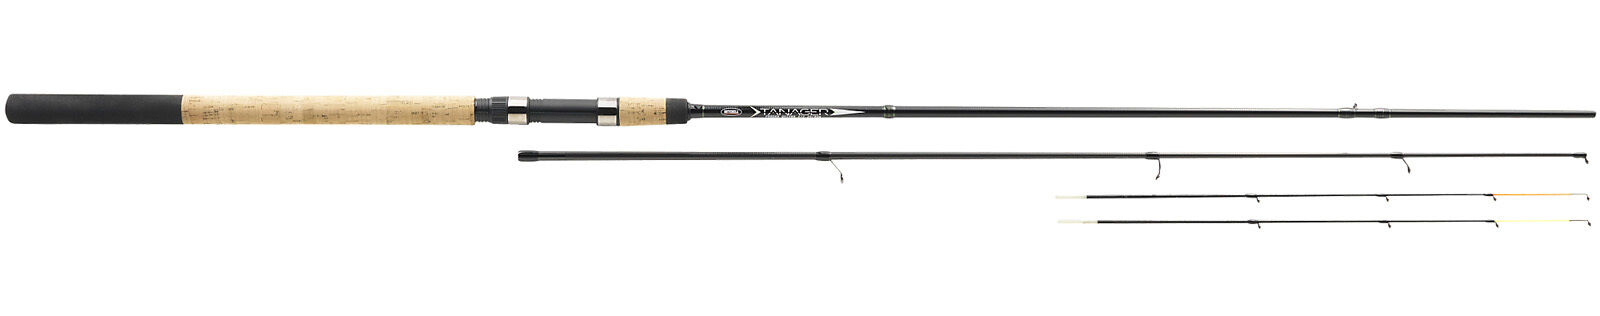 Mitchell Tanager Series Feeder Quiver All Sizes Sea 20-80g Fishing Rod